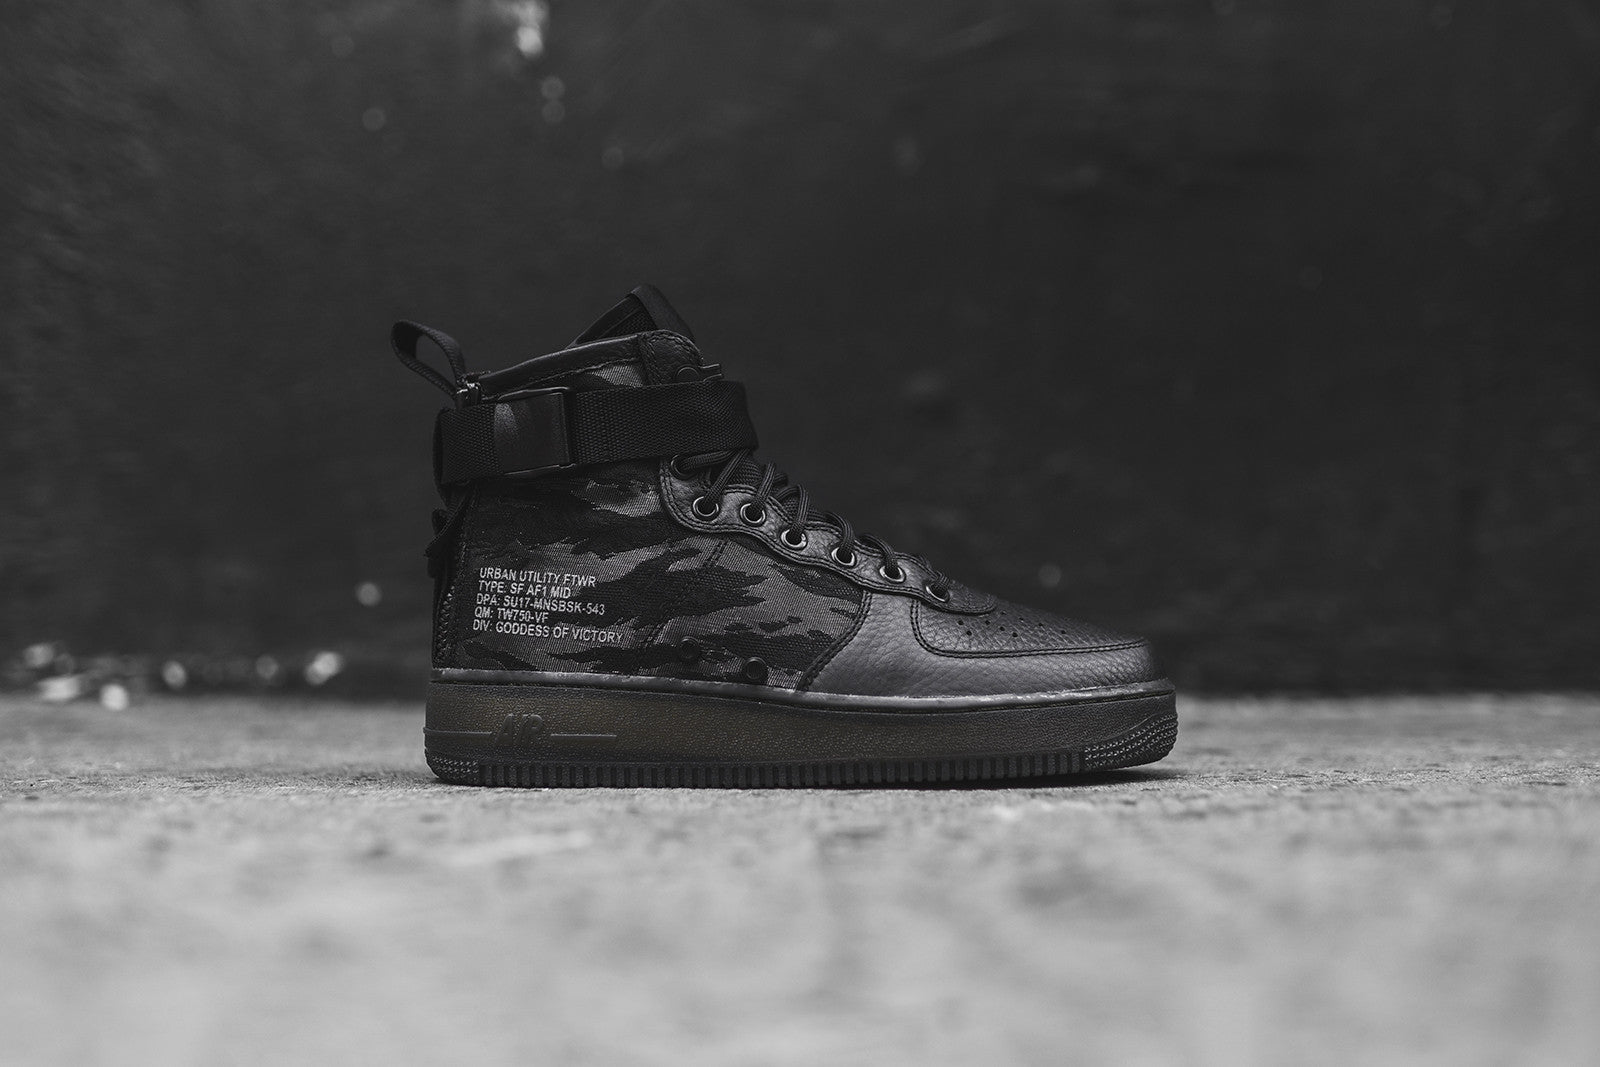 best sneakers 132c4 e64fe Nike SF-AF1 Mid QS - Black   Camo. June 08, 2017. -4. -1